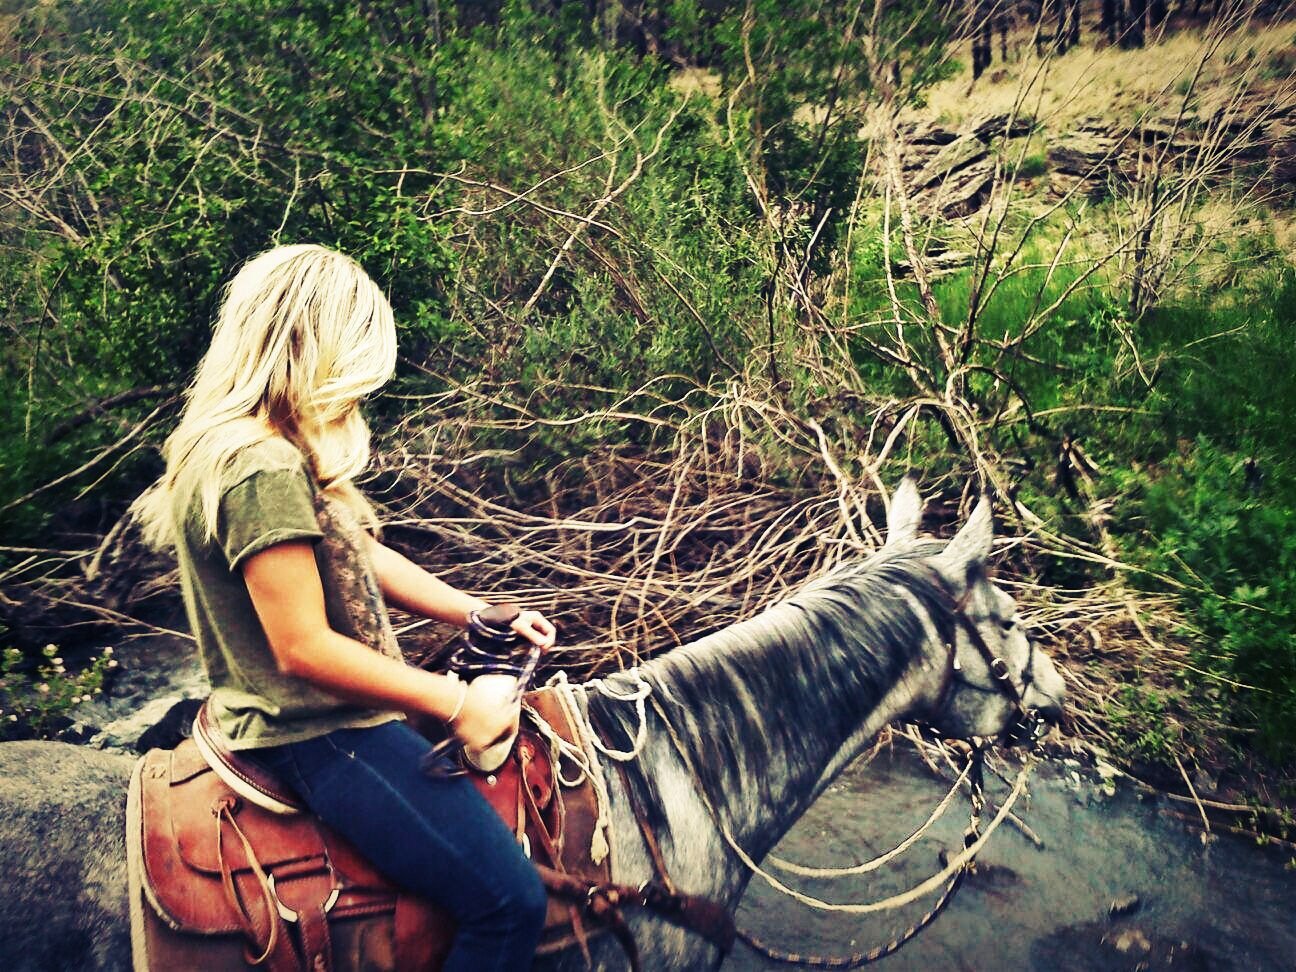 Riding horses / blonde